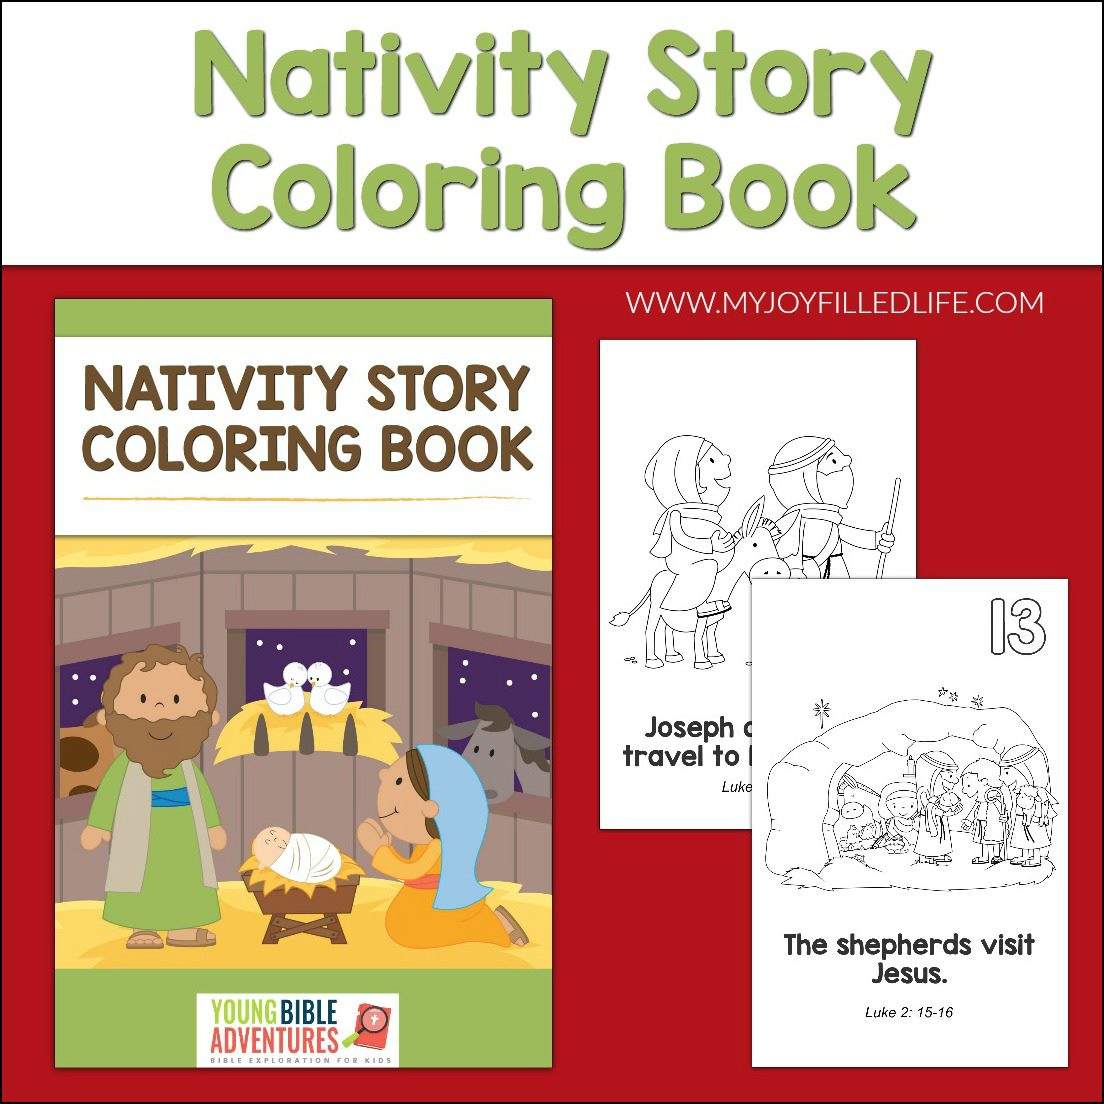 Nativity Story Coloring Book